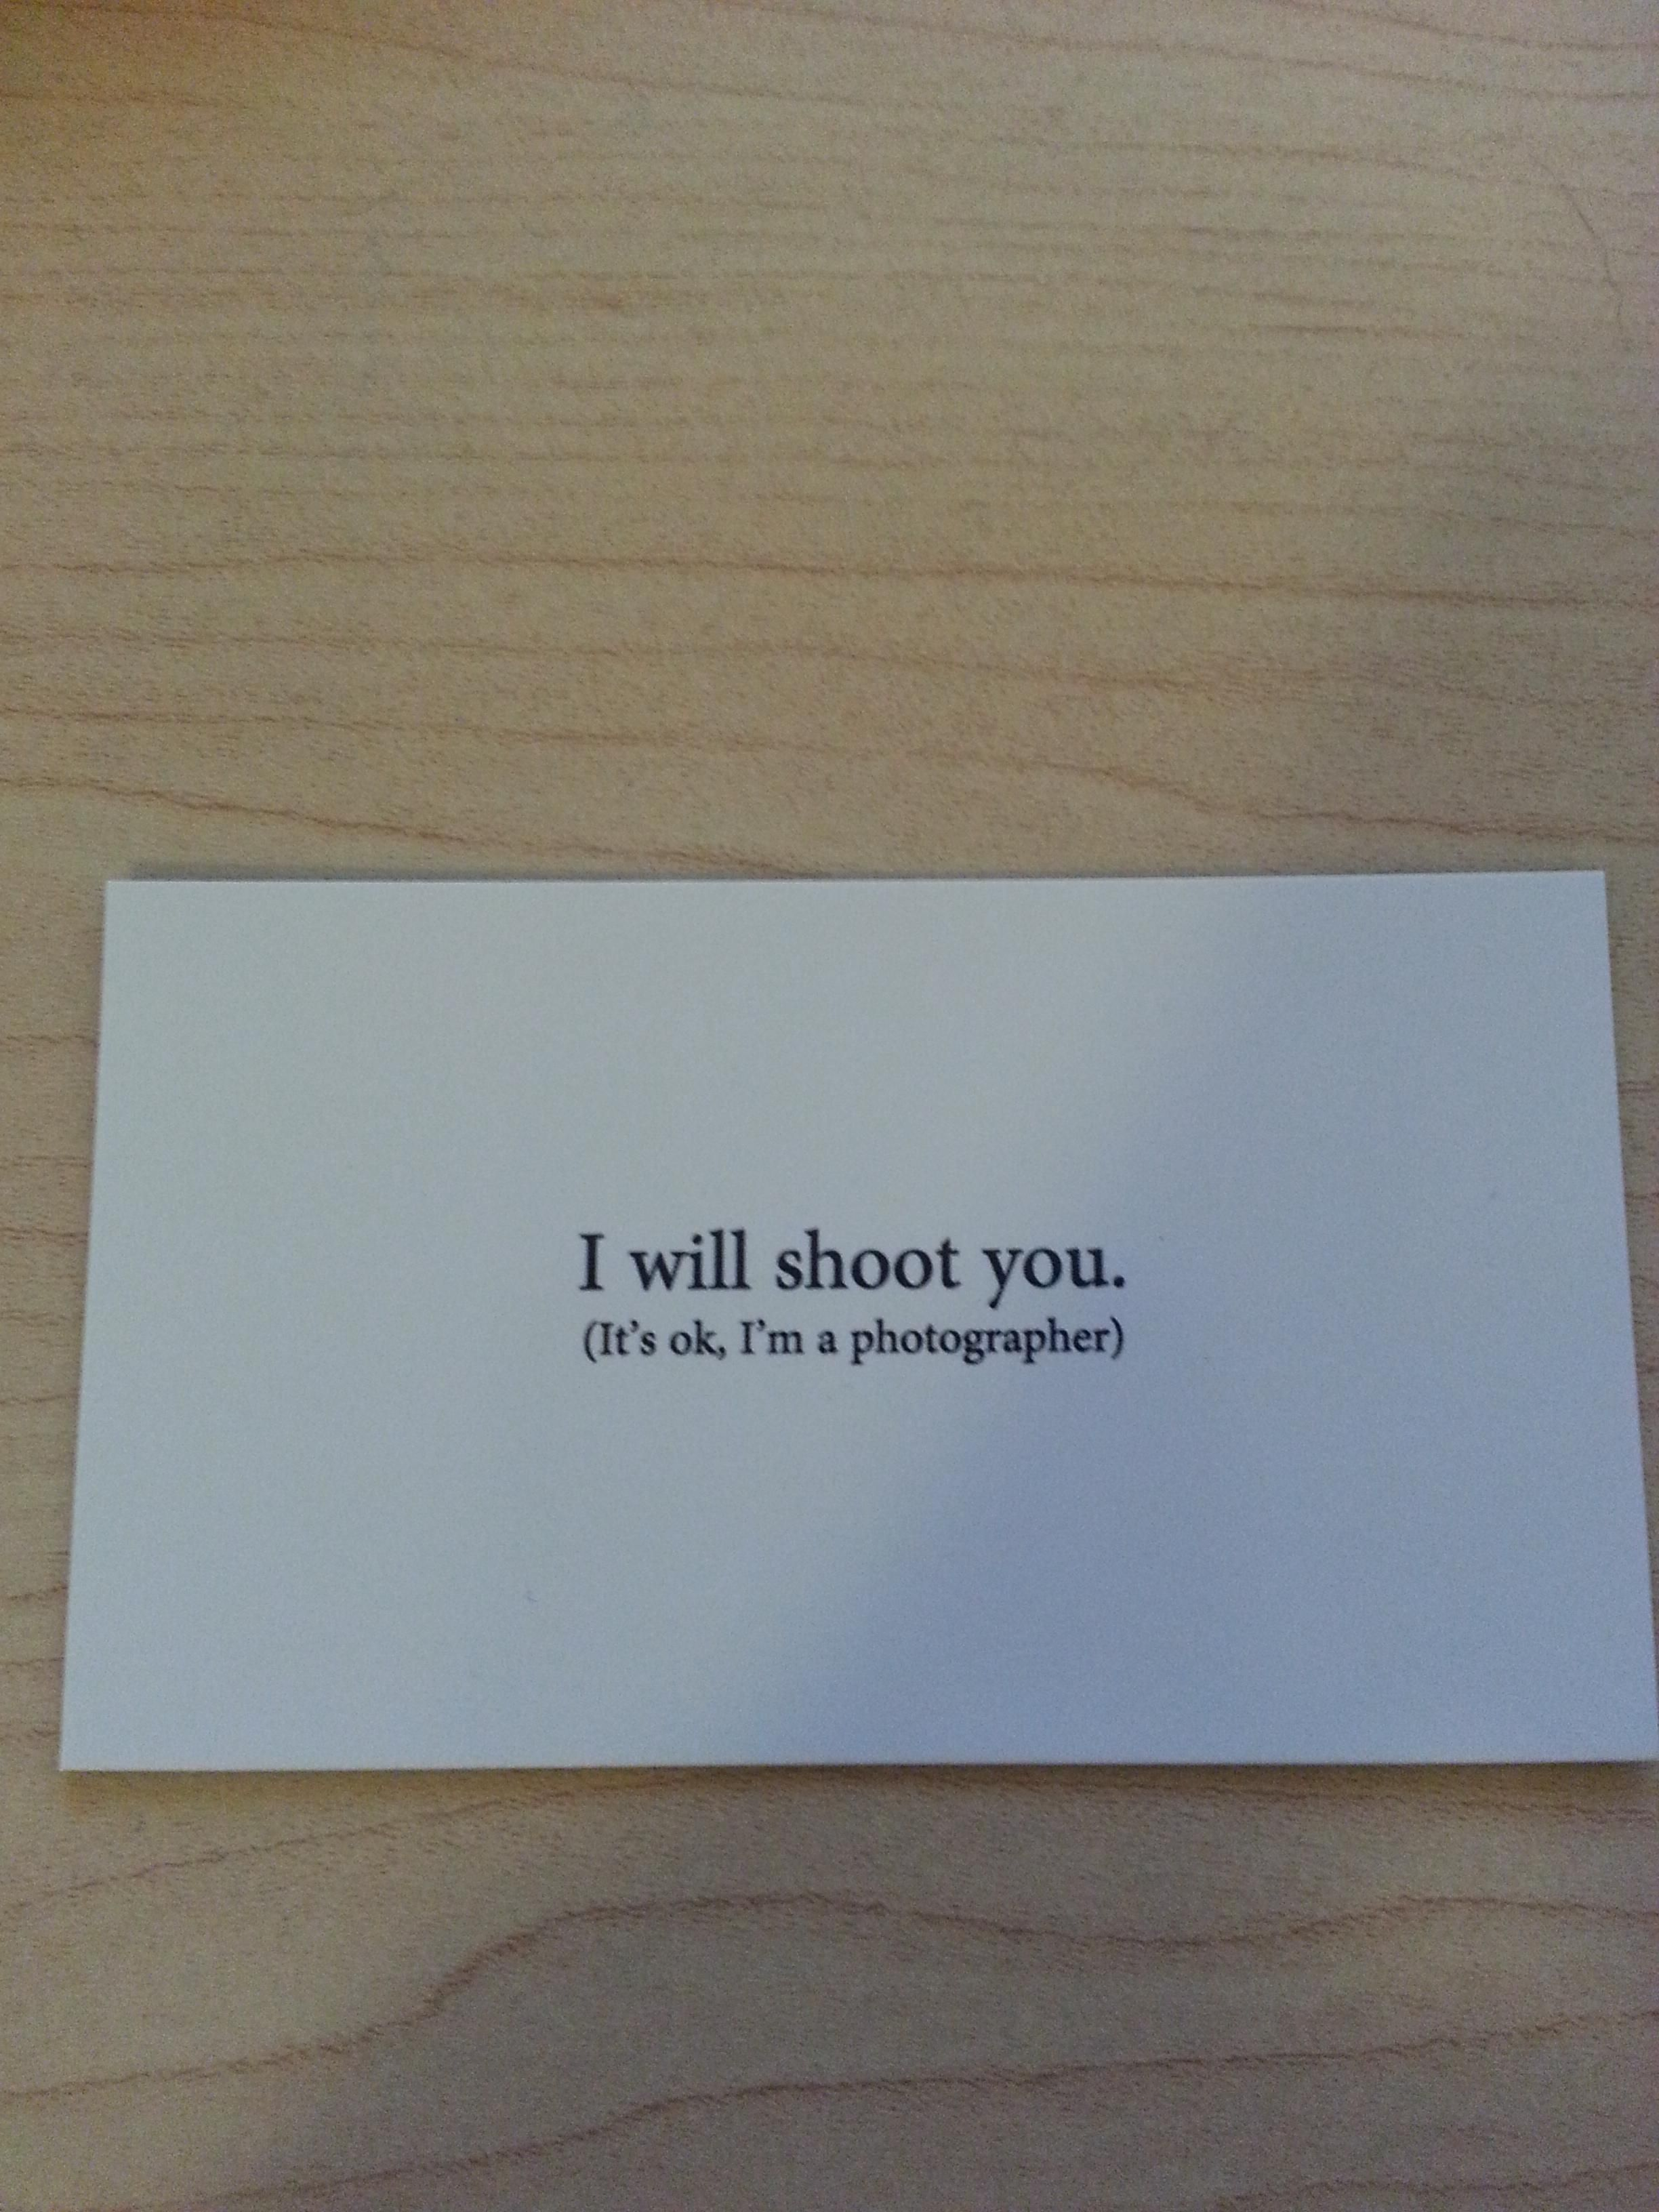 My first business cards business cards funny things and humor this i will shoot you business card is awesome reheart Choice Image